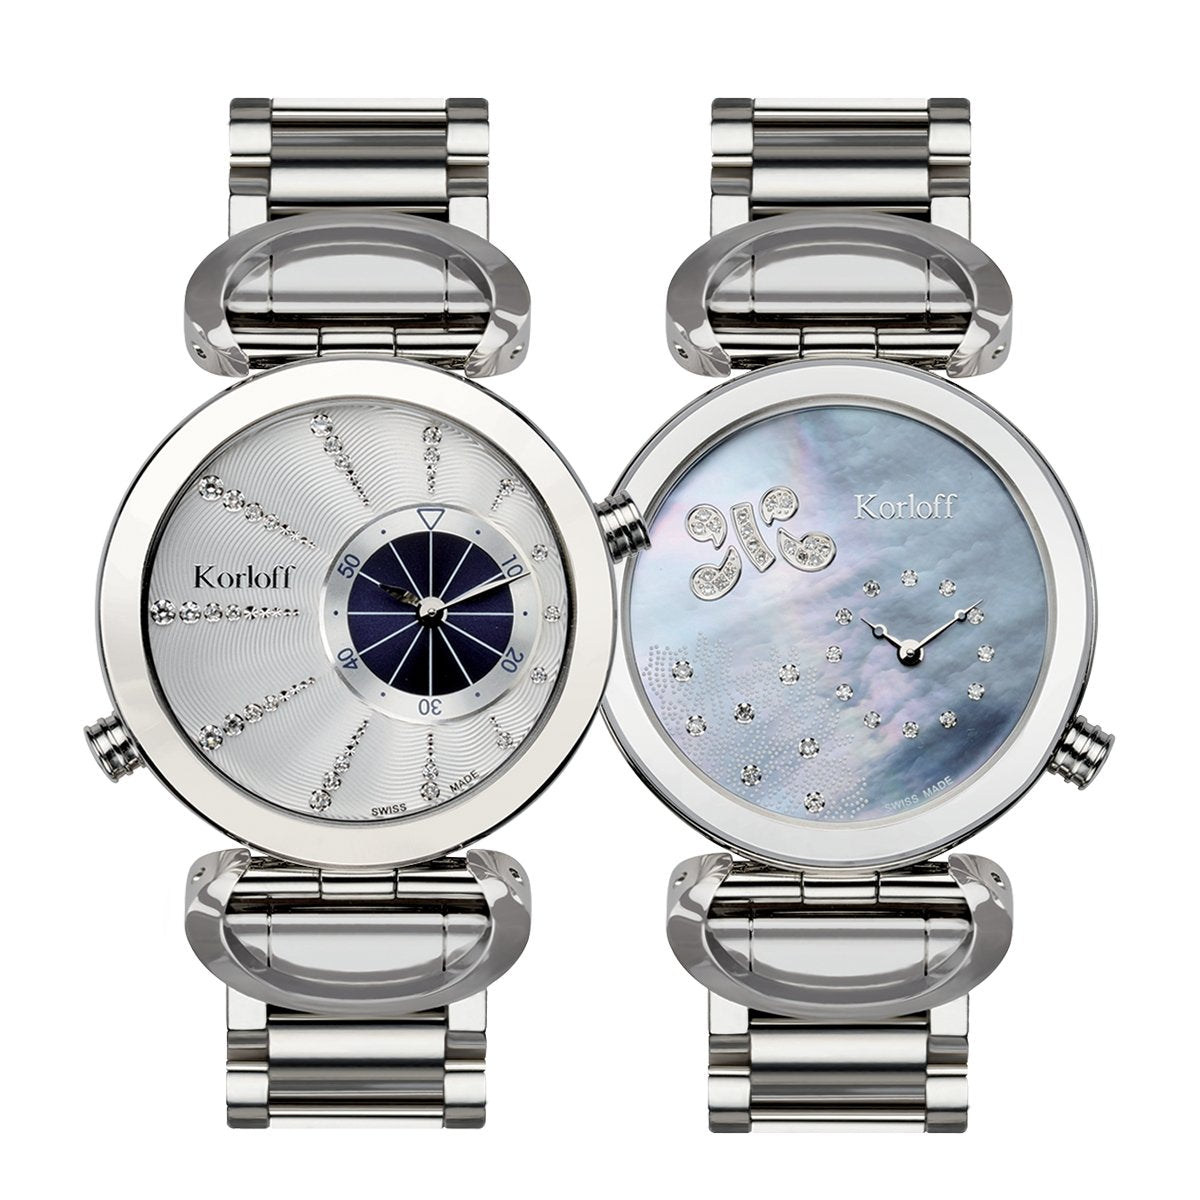 Korloff Marine Collection Reversible Diamond Steel - Watches & Crystals